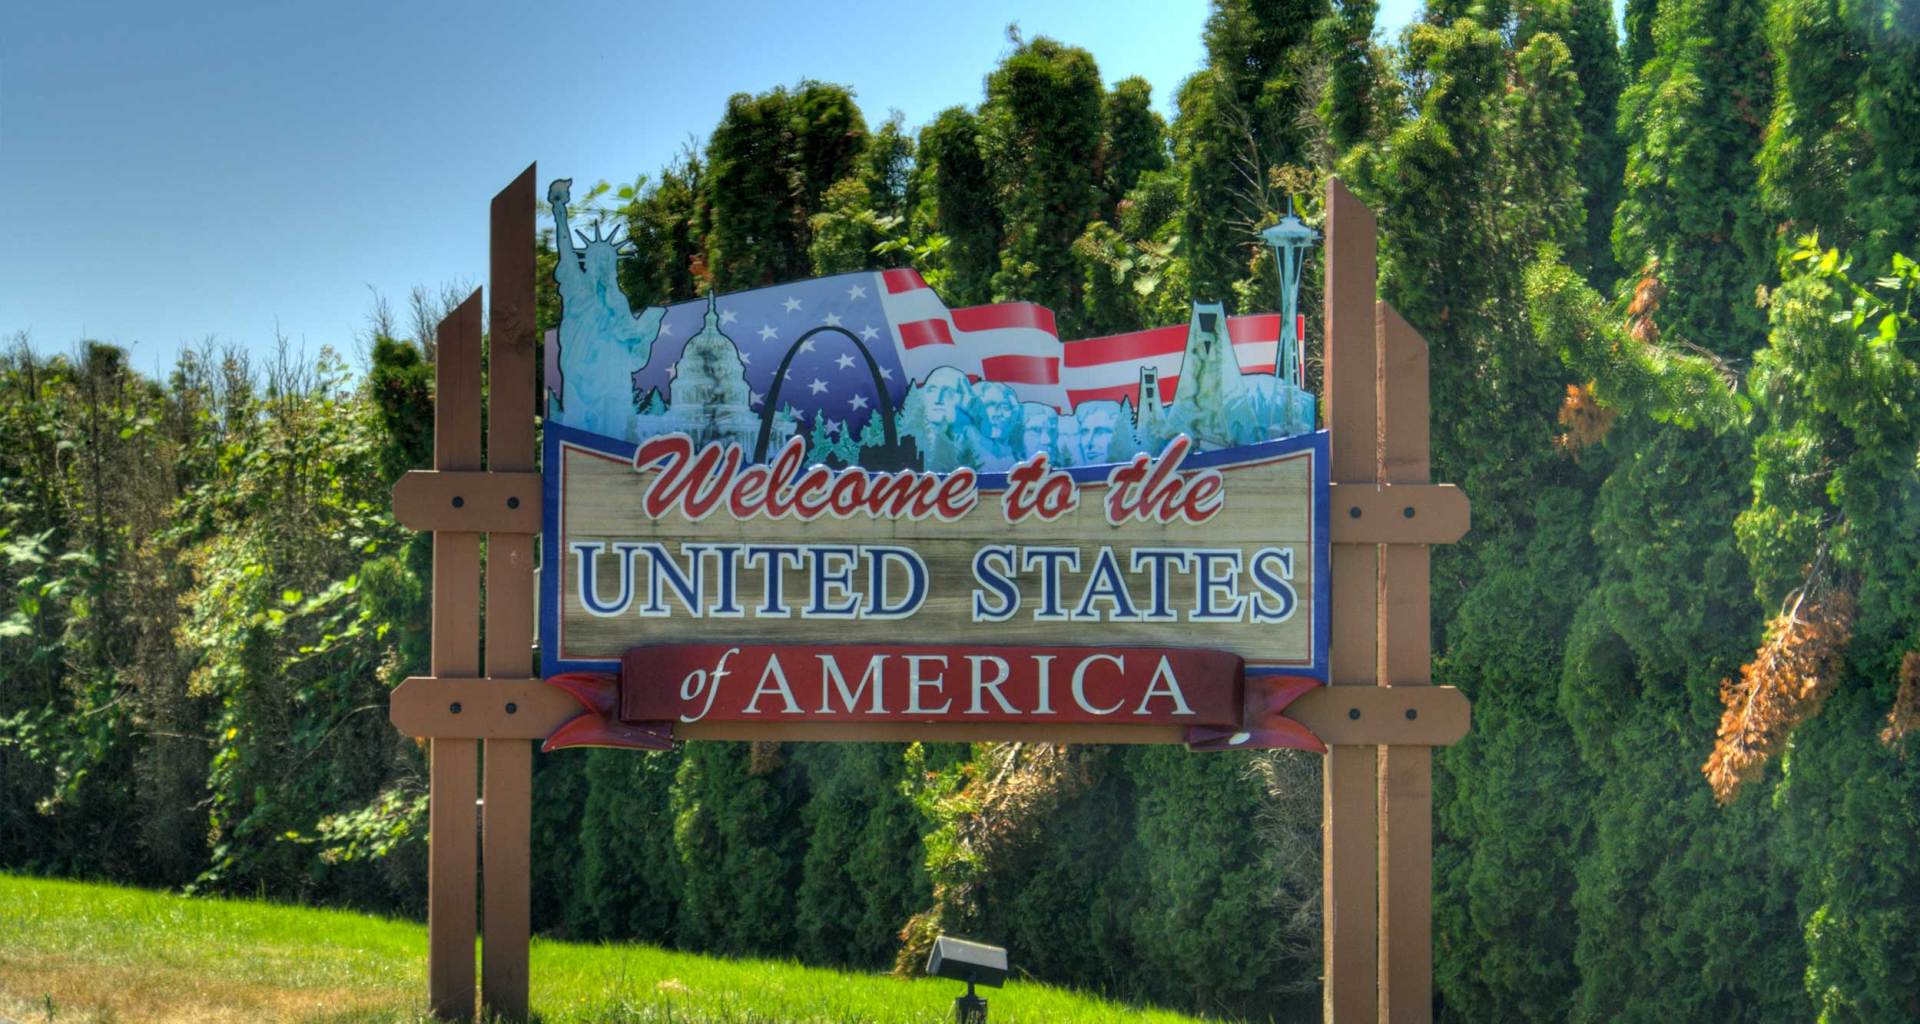 Welcome to the United States of America sign.